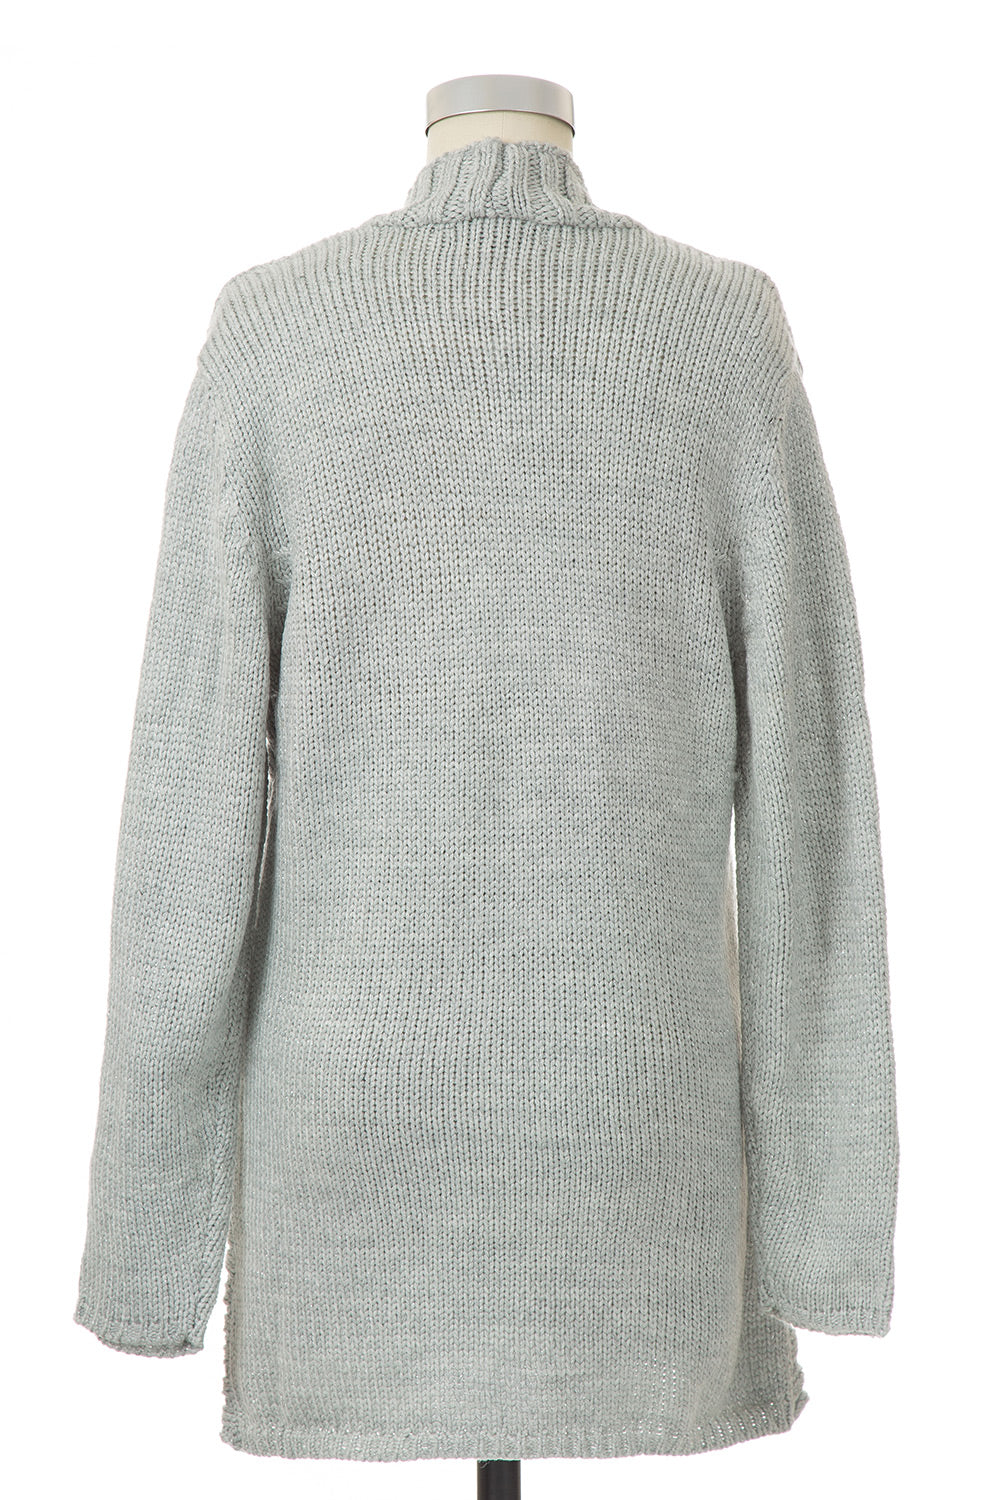 Type 2 Silver Bells Sweater